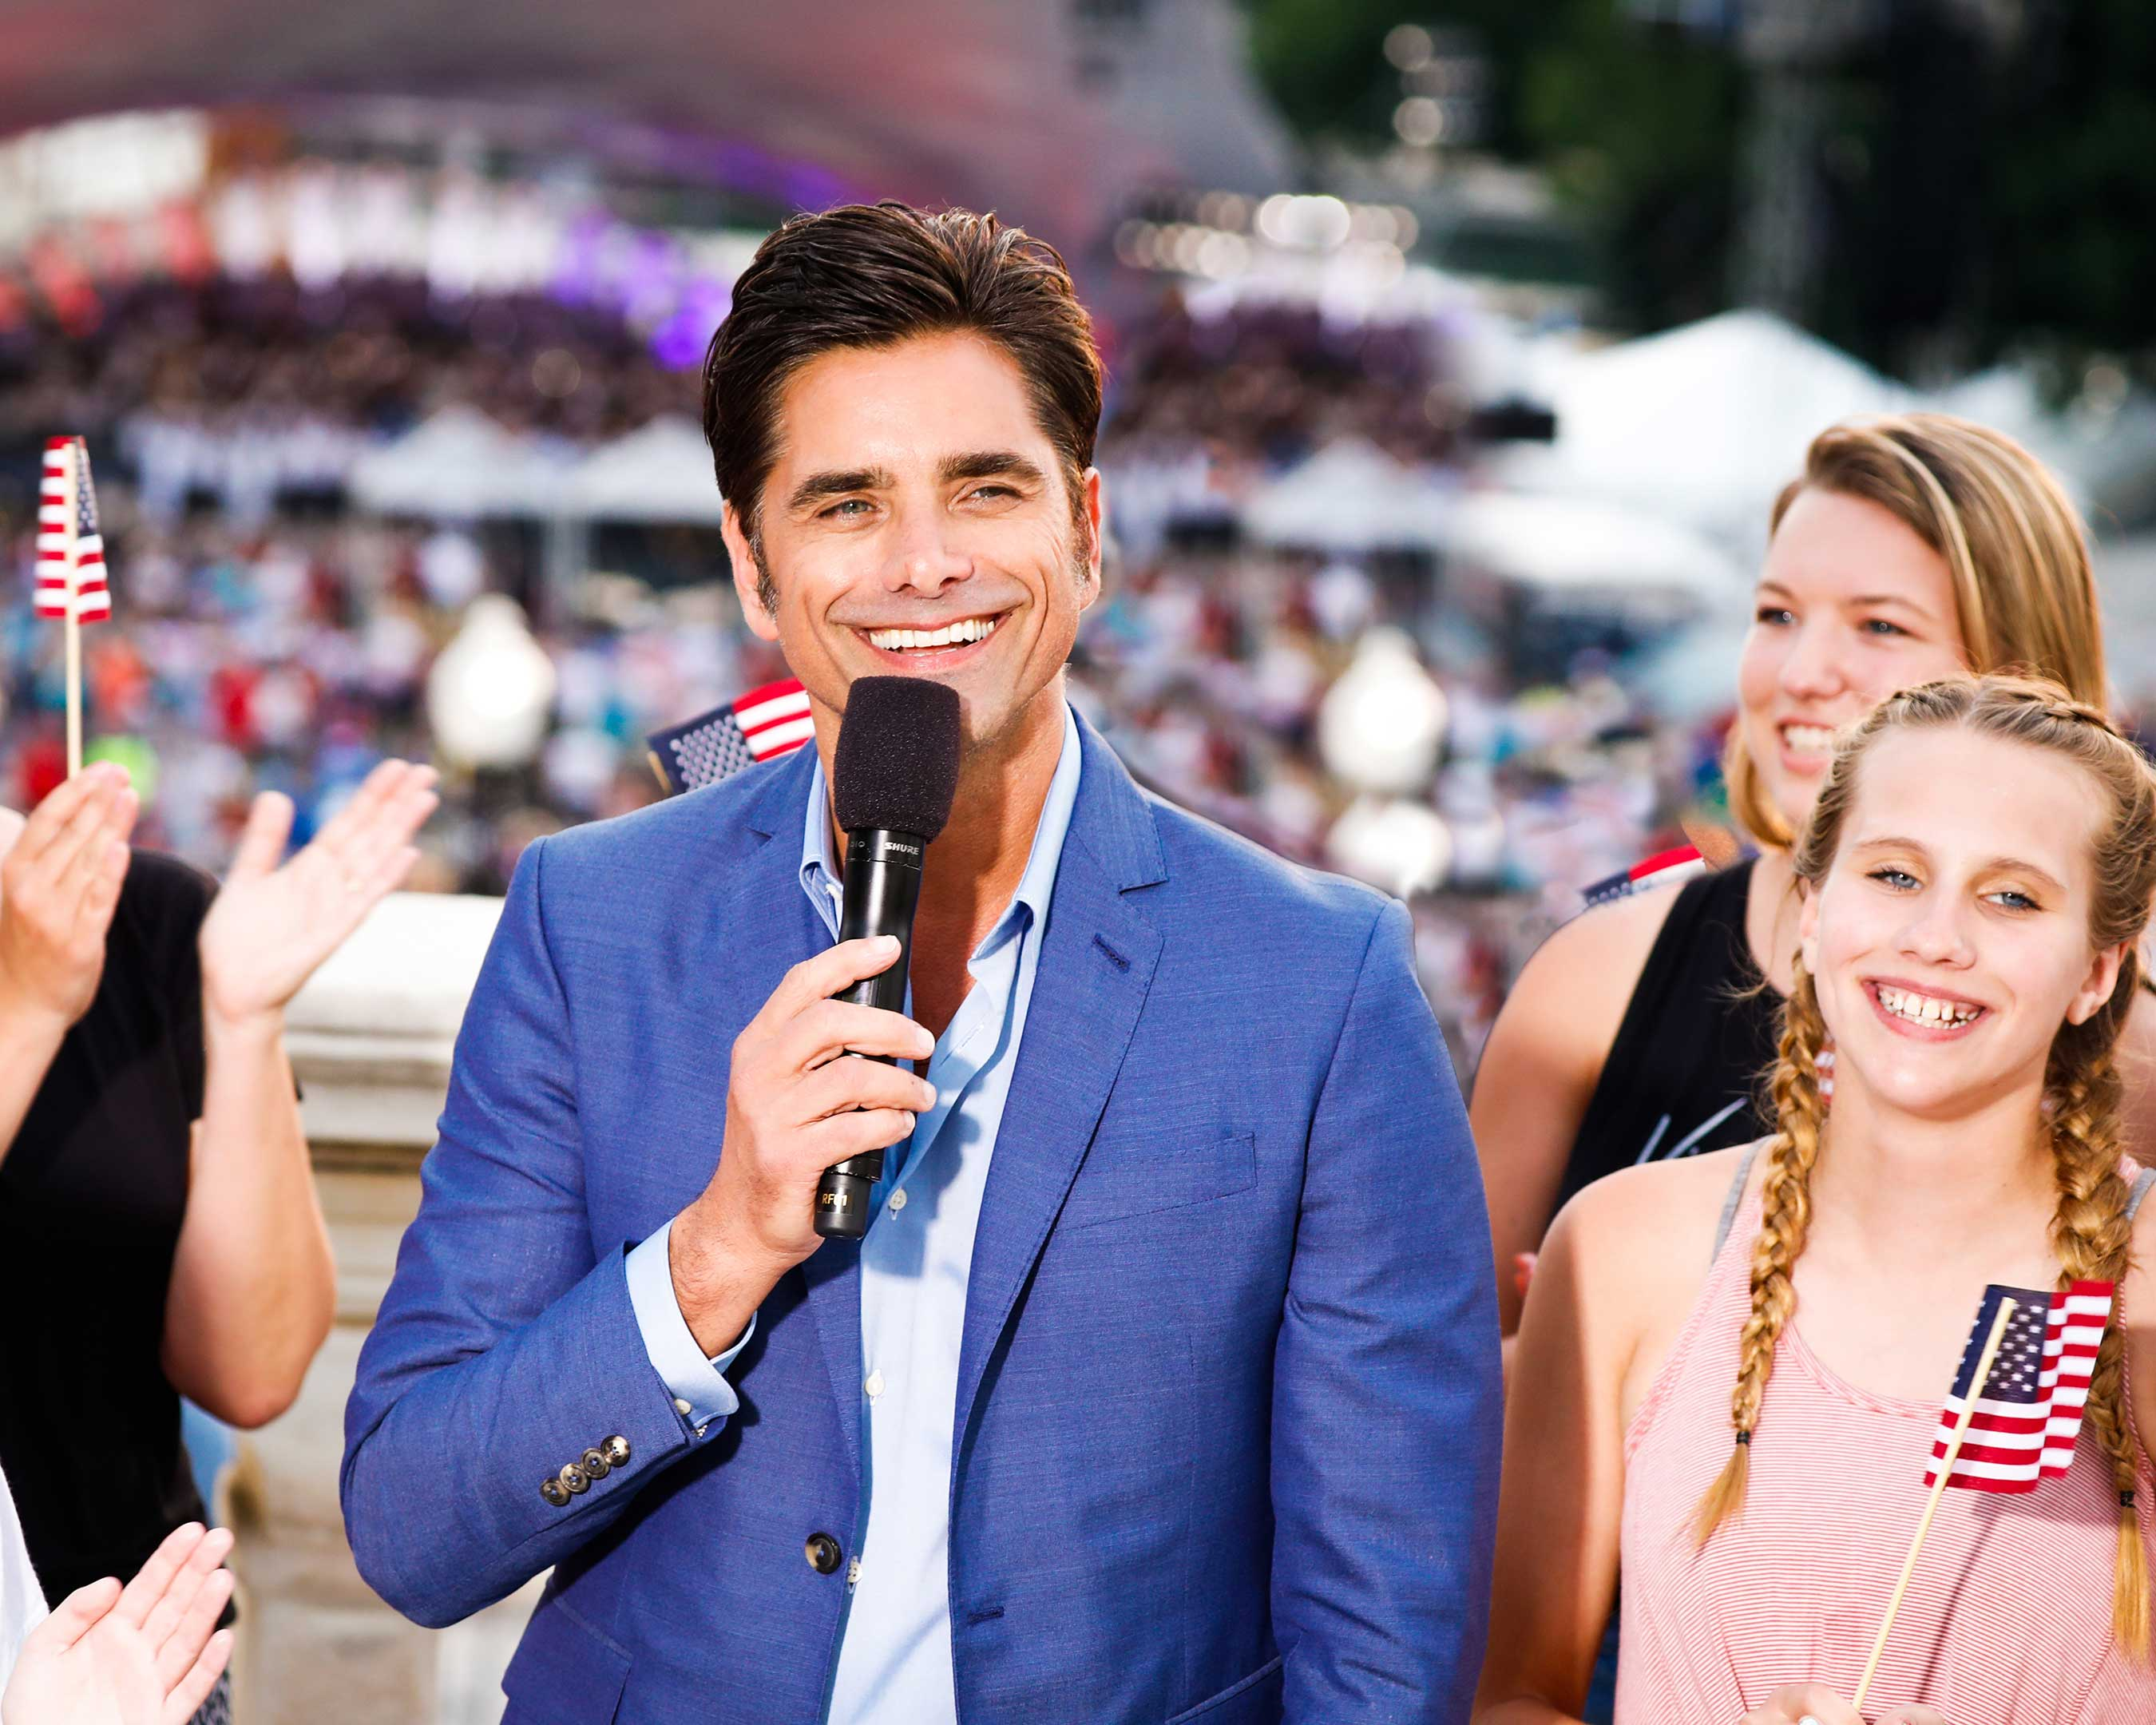 Two-time Emmy Award-nominated actor and producer John Stamos (Netflix's YOU, FULLER HOUSE, ER) returns to host A CAPITOL FOURTH, the country's longest-running live national July 4th TV tradition.